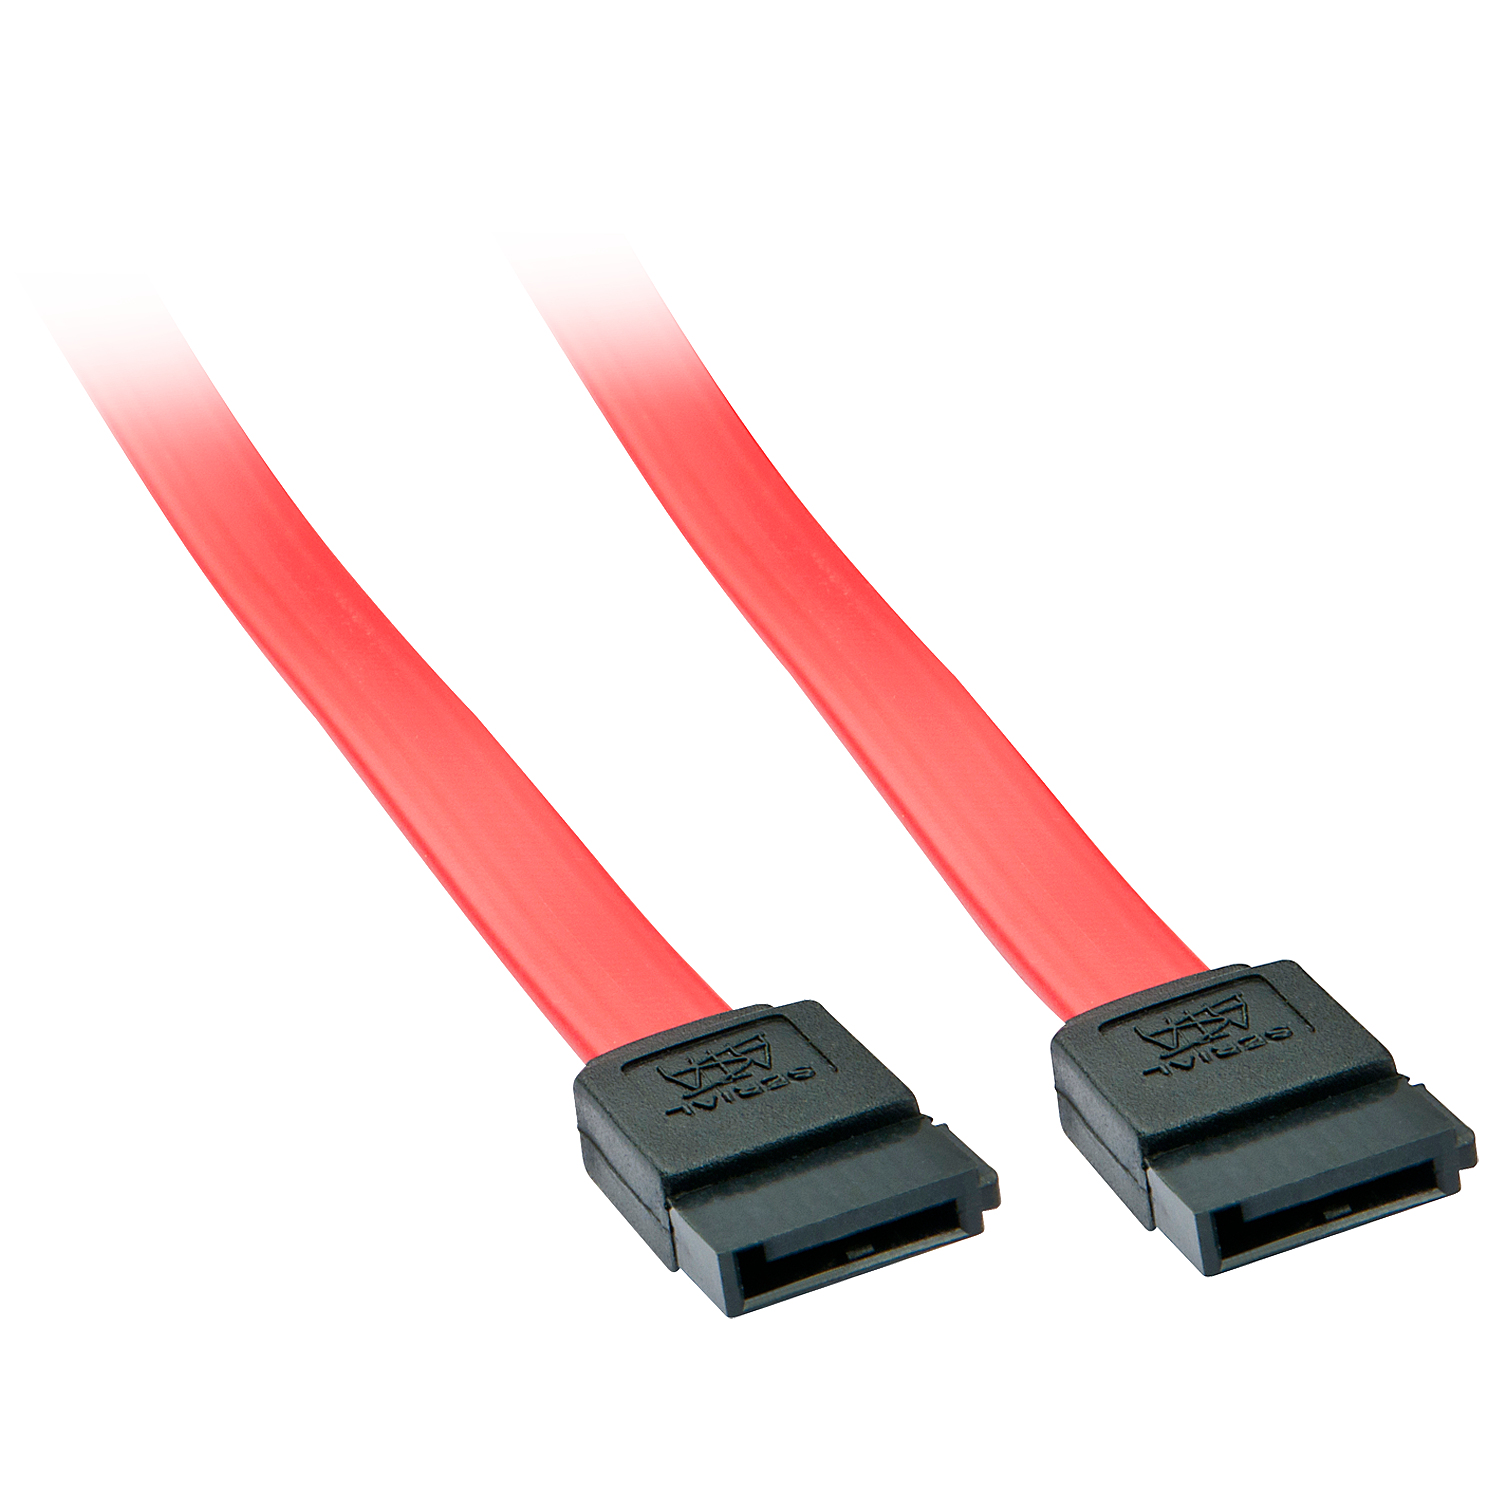 Lindy 33323 SATA cable 0.2 m SATA 7-pin Red